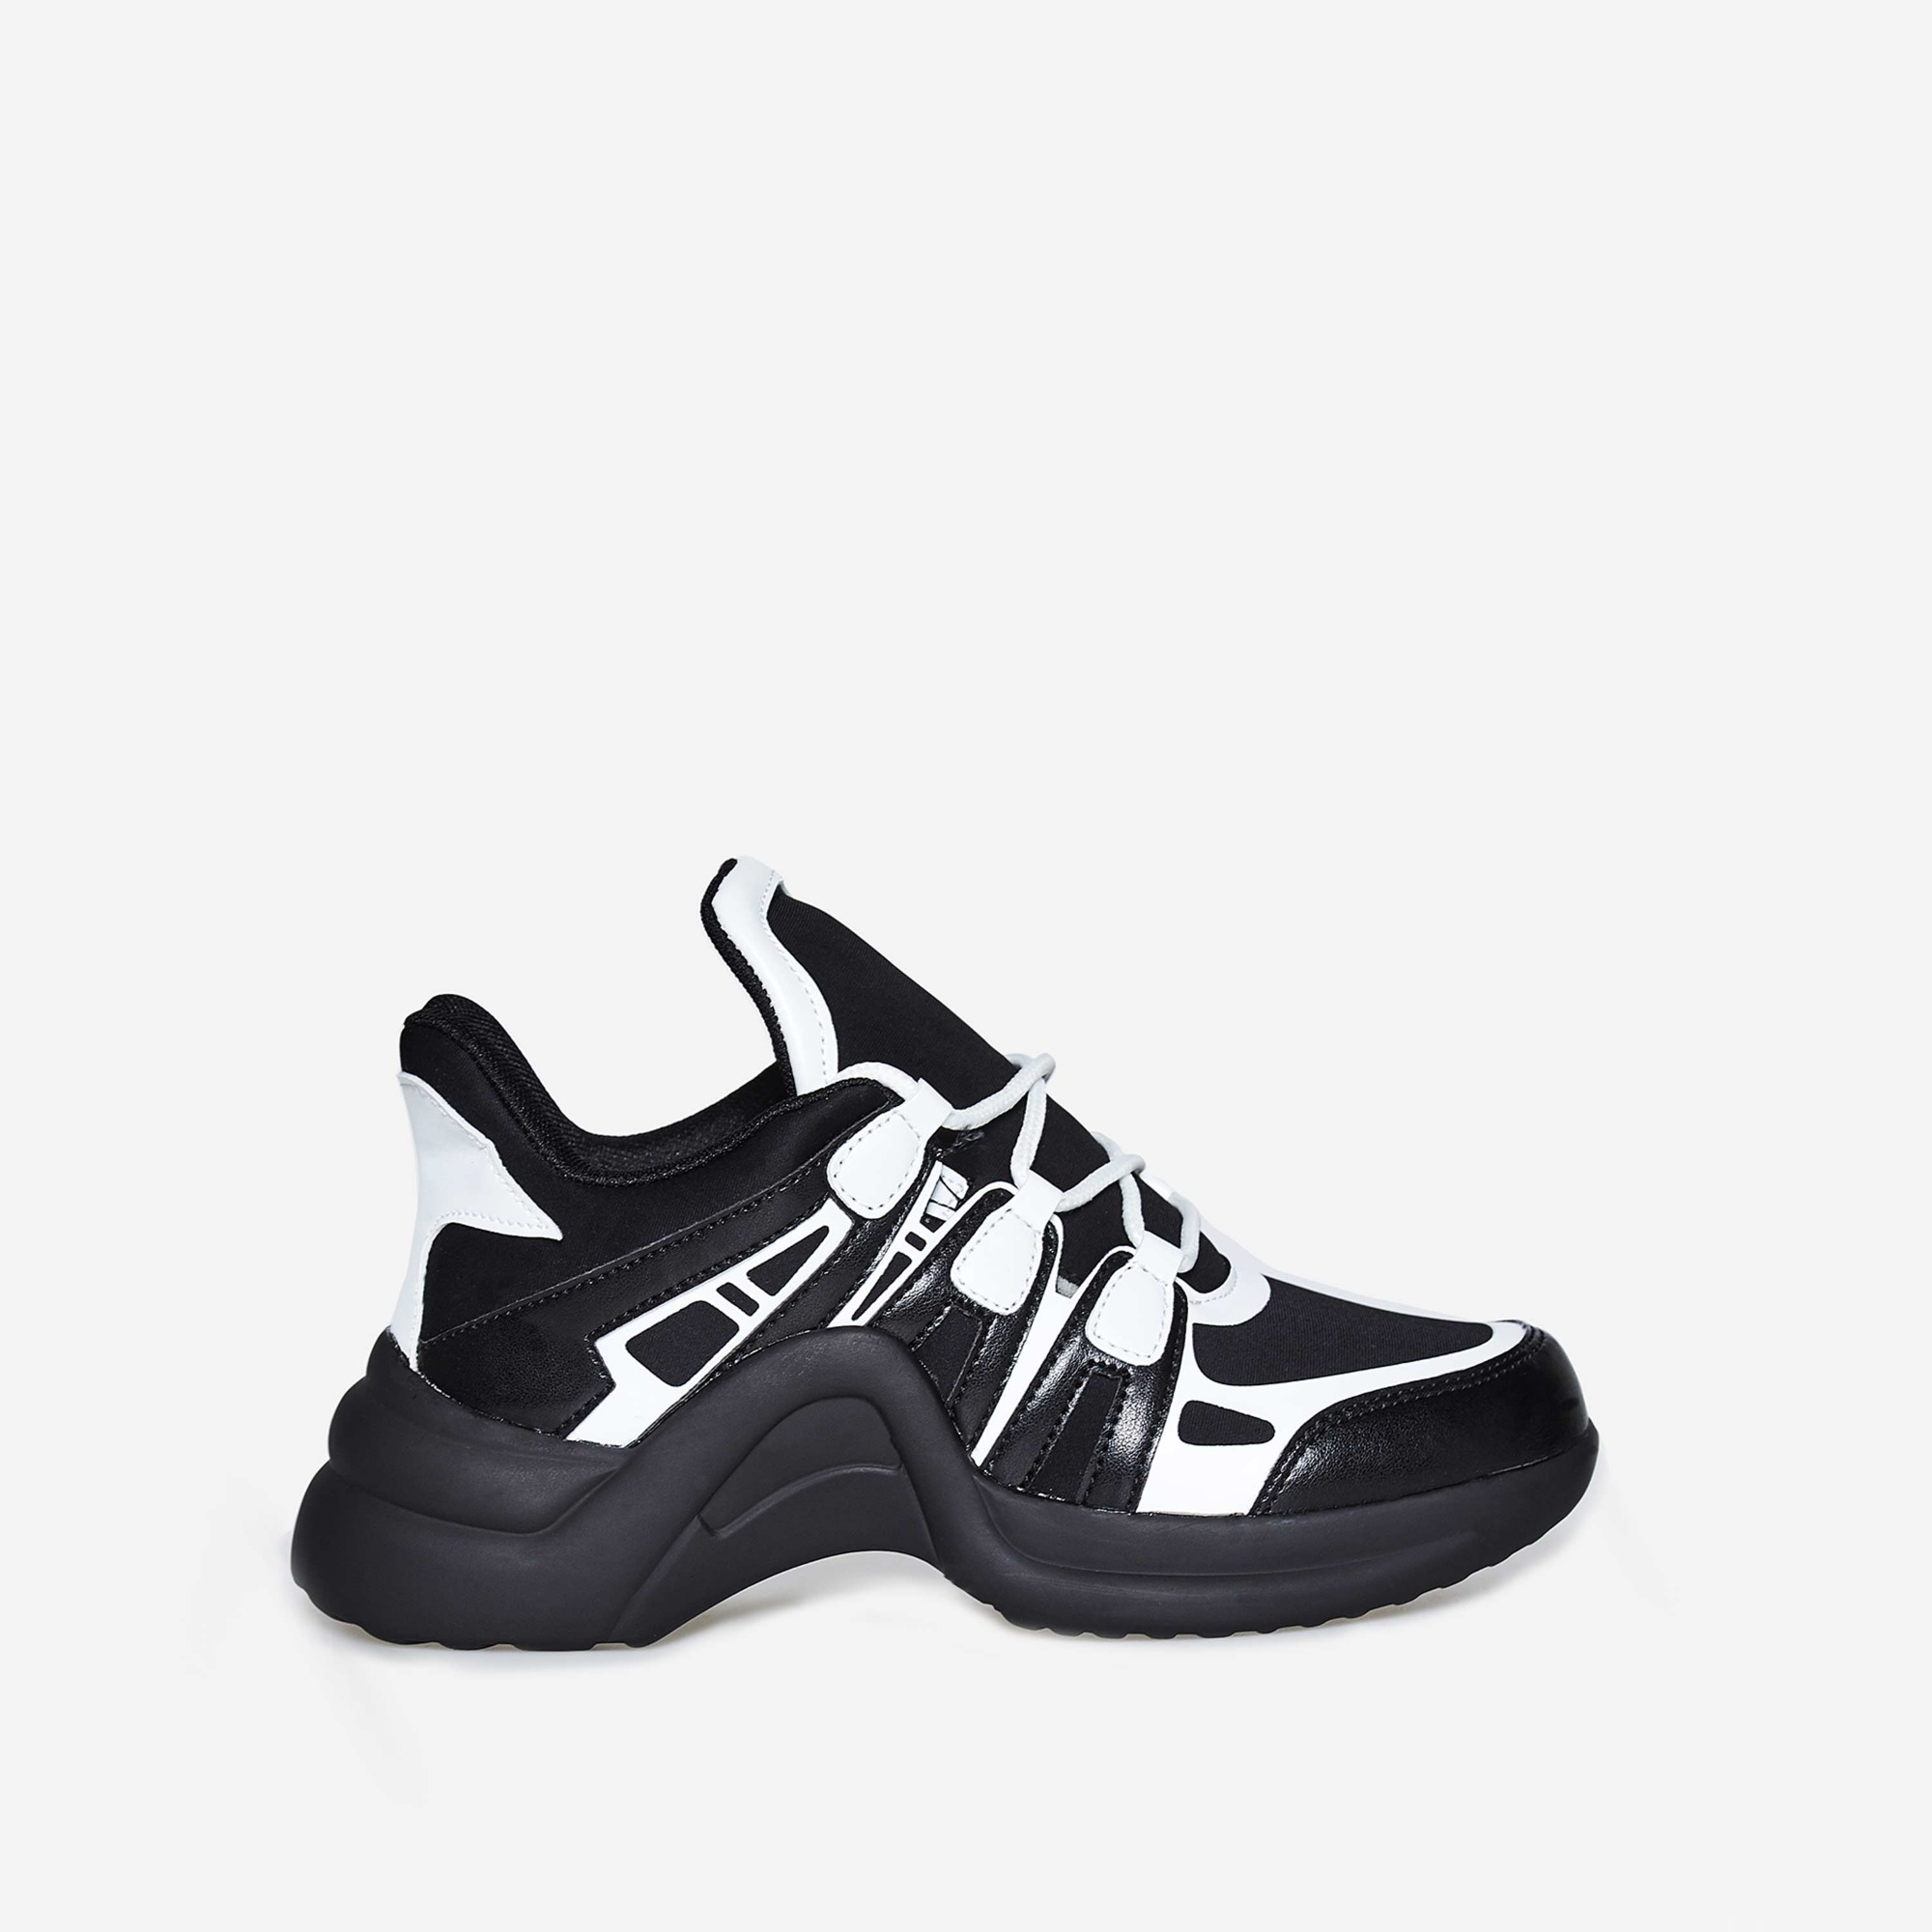 Marisa Wave Sole Trainer In Black And White Faux Leather